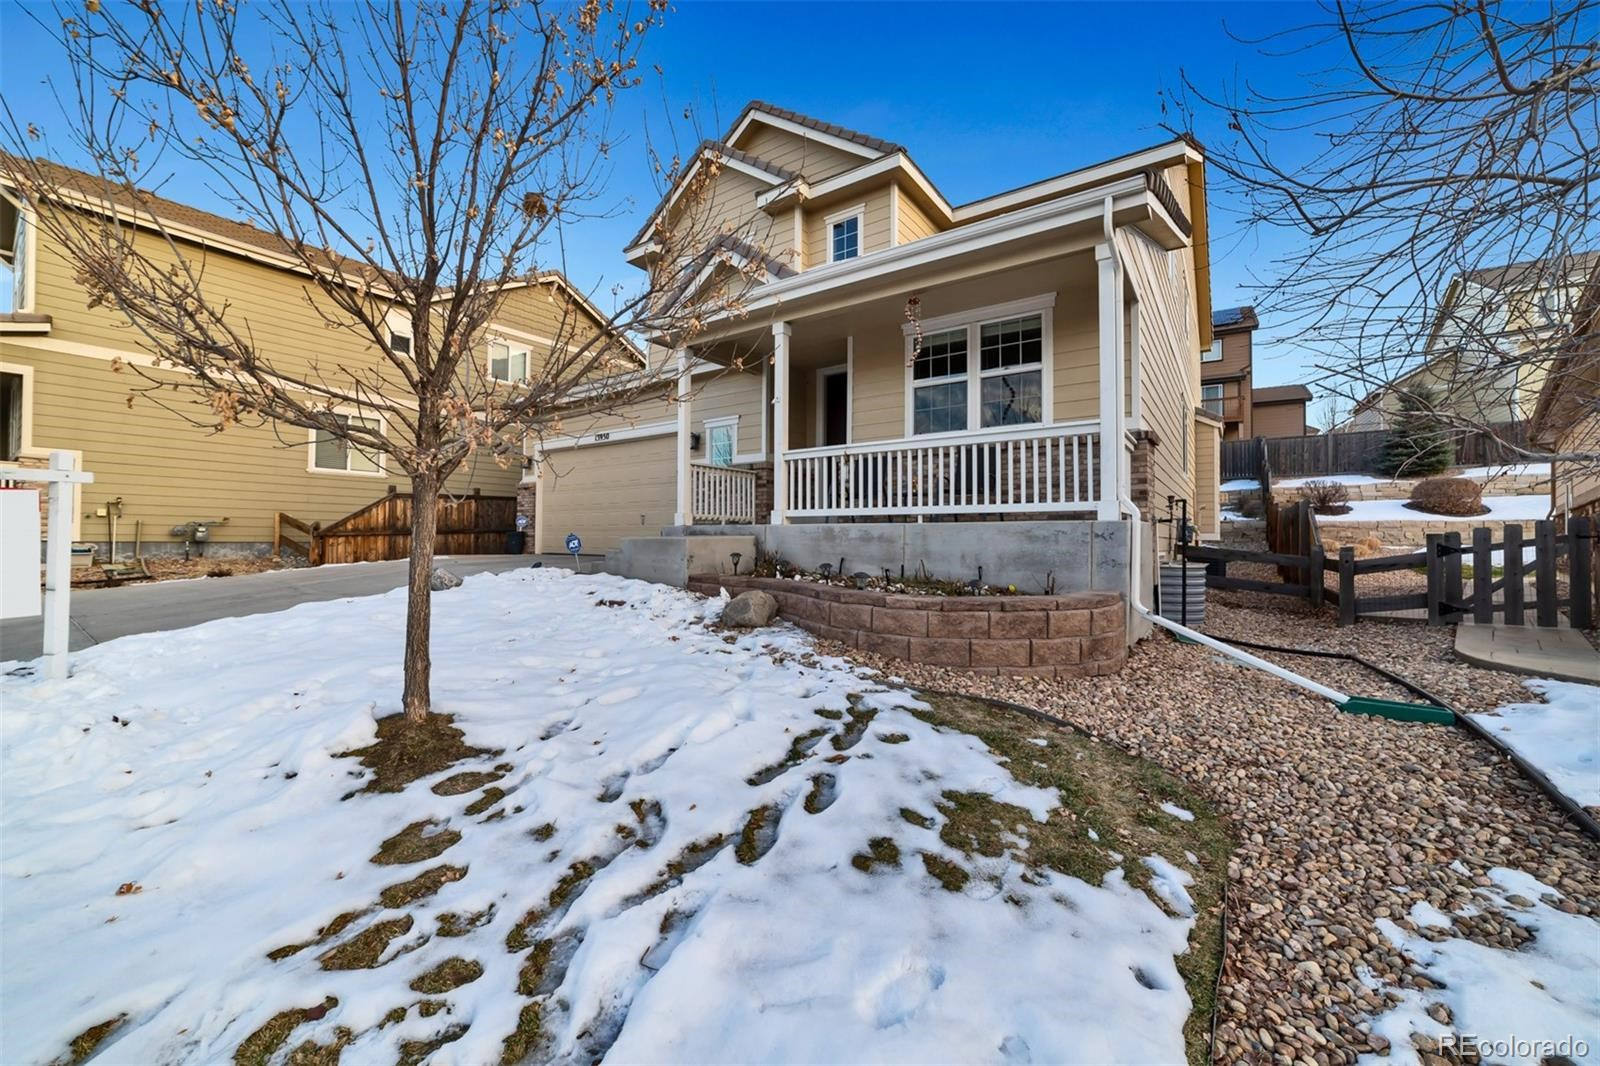 MLS# 8550062 - 2 - 13950 Eisberry Way, Parker, CO 80134